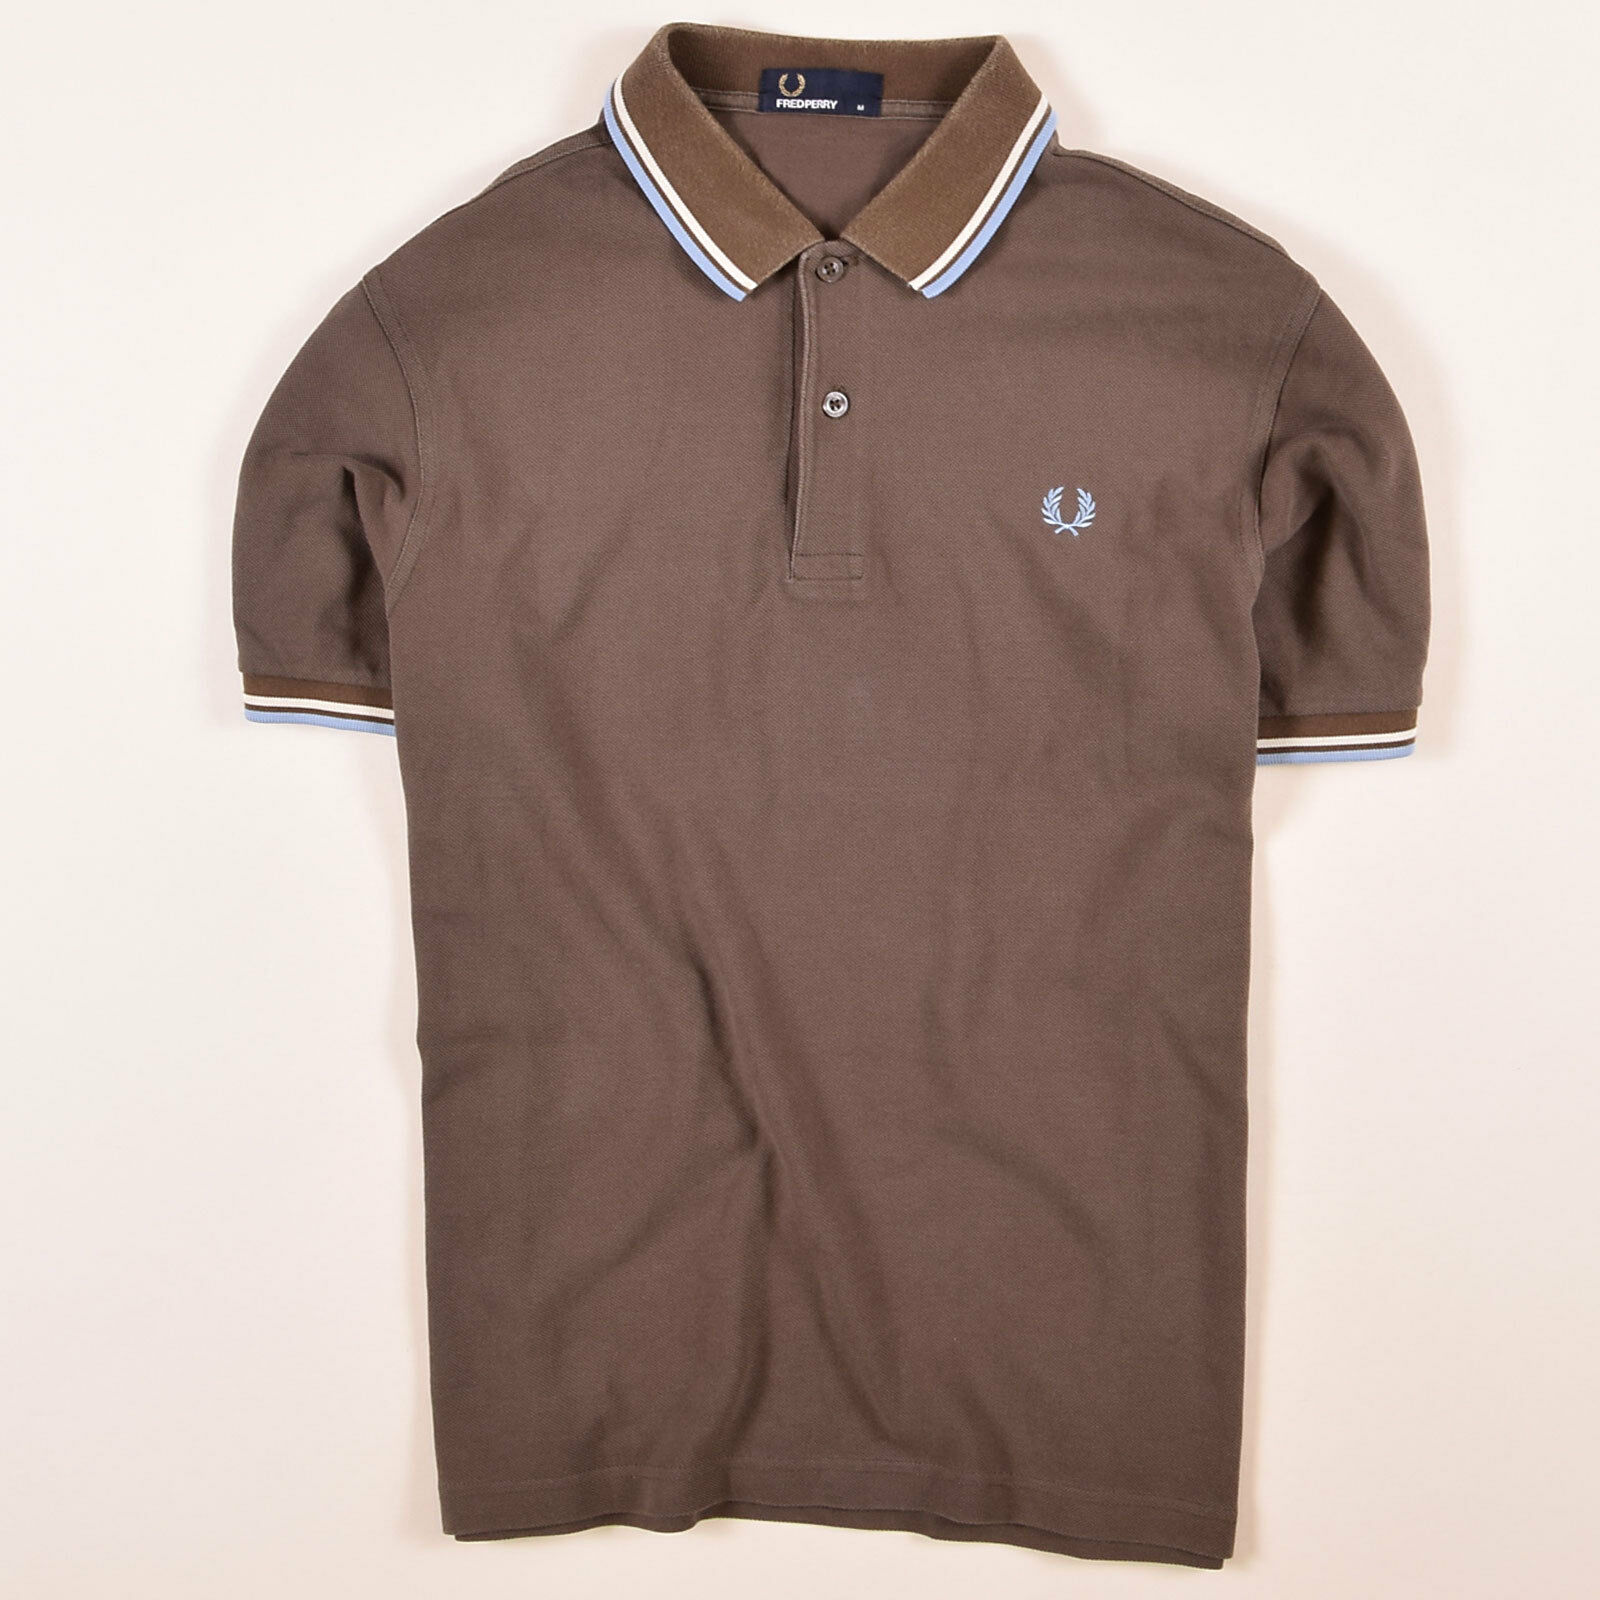 0e6853f5519 FRouge Perry Homme Polo Polo Shirt Taille M M M Marron